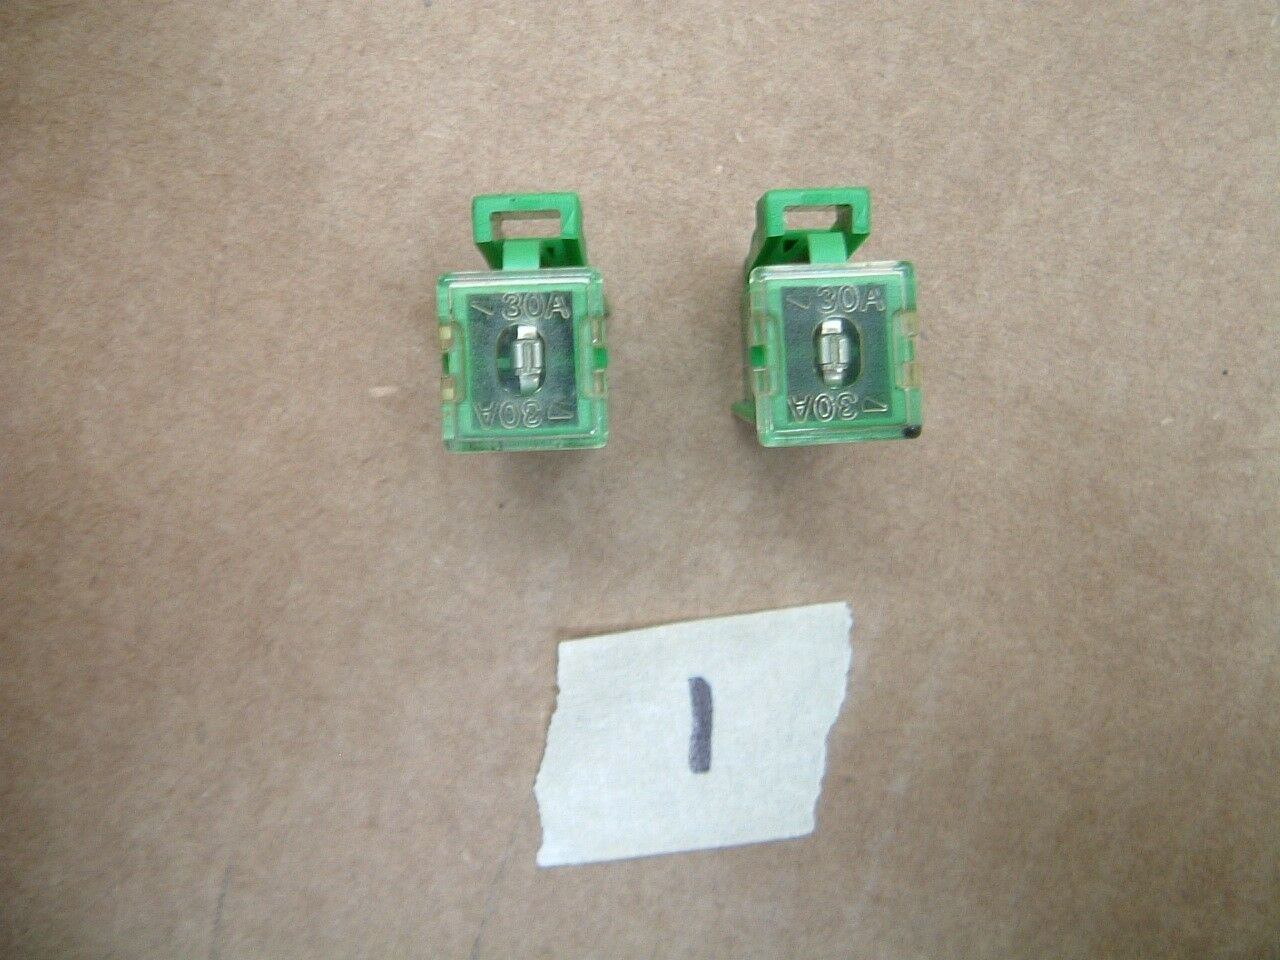 91 Nissan 240sx Electrical Fuses Box Trusted Wiring Diagram 89 Maxima Fuse S13 Library Rear Differential